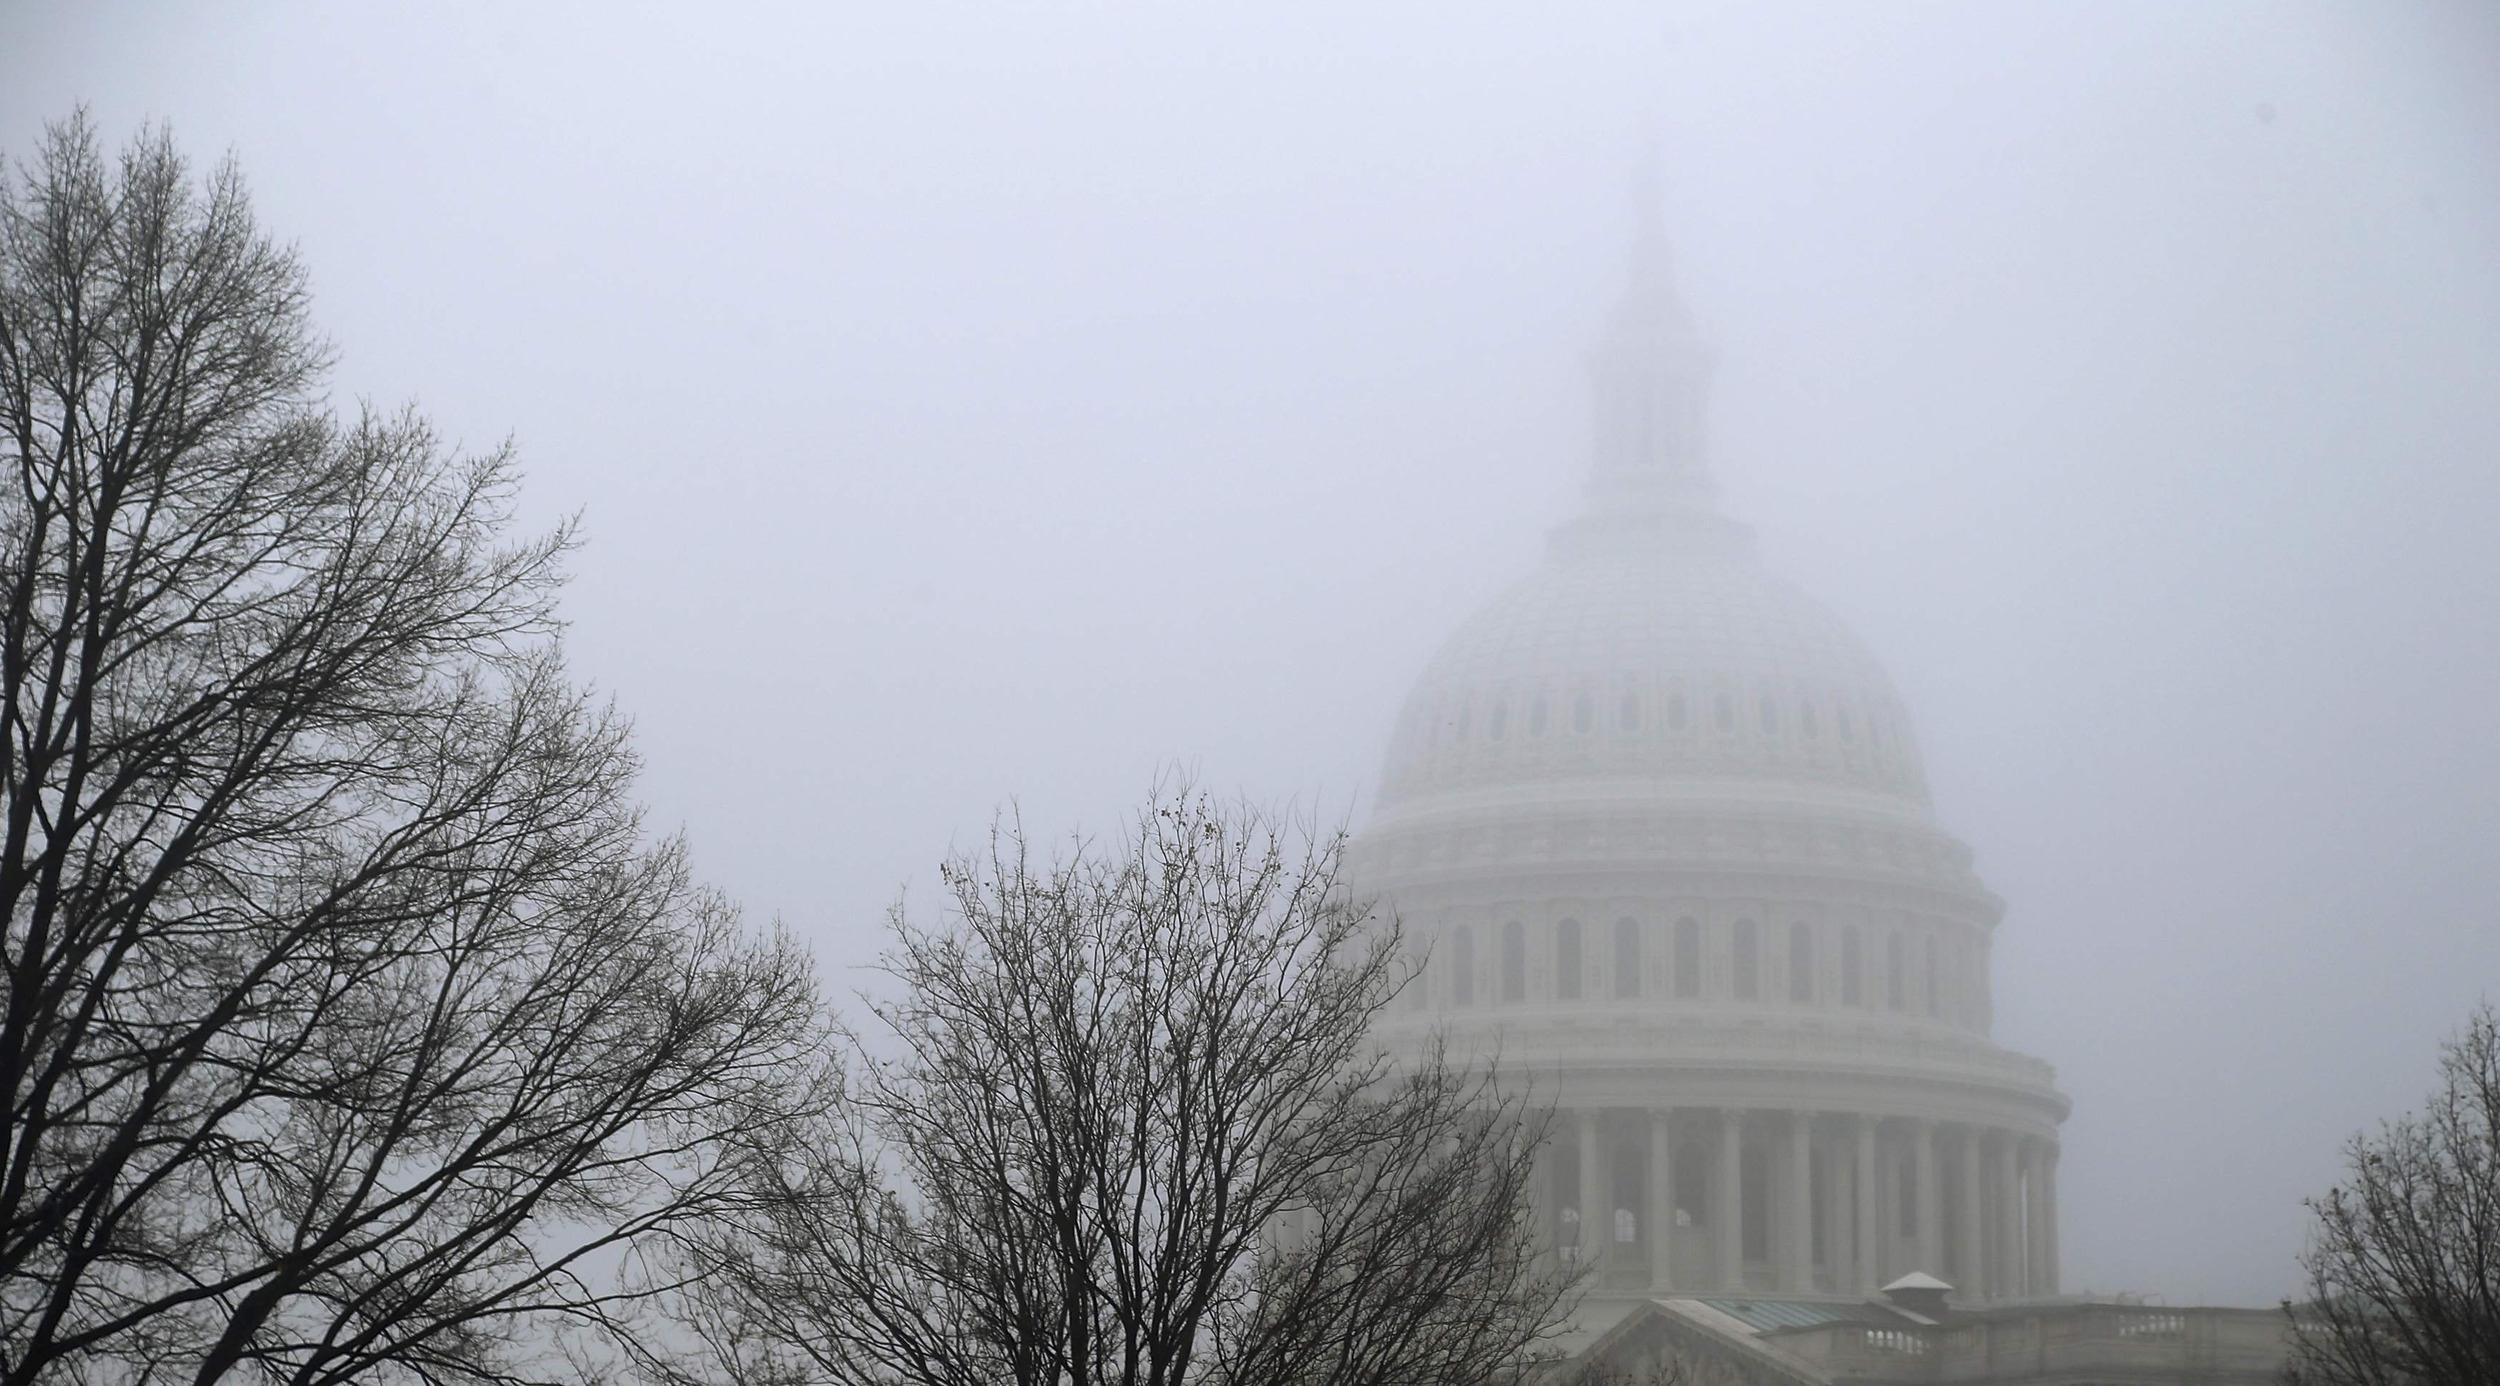 Image: Morning mist covers the U.S. Capitol dome in Washington